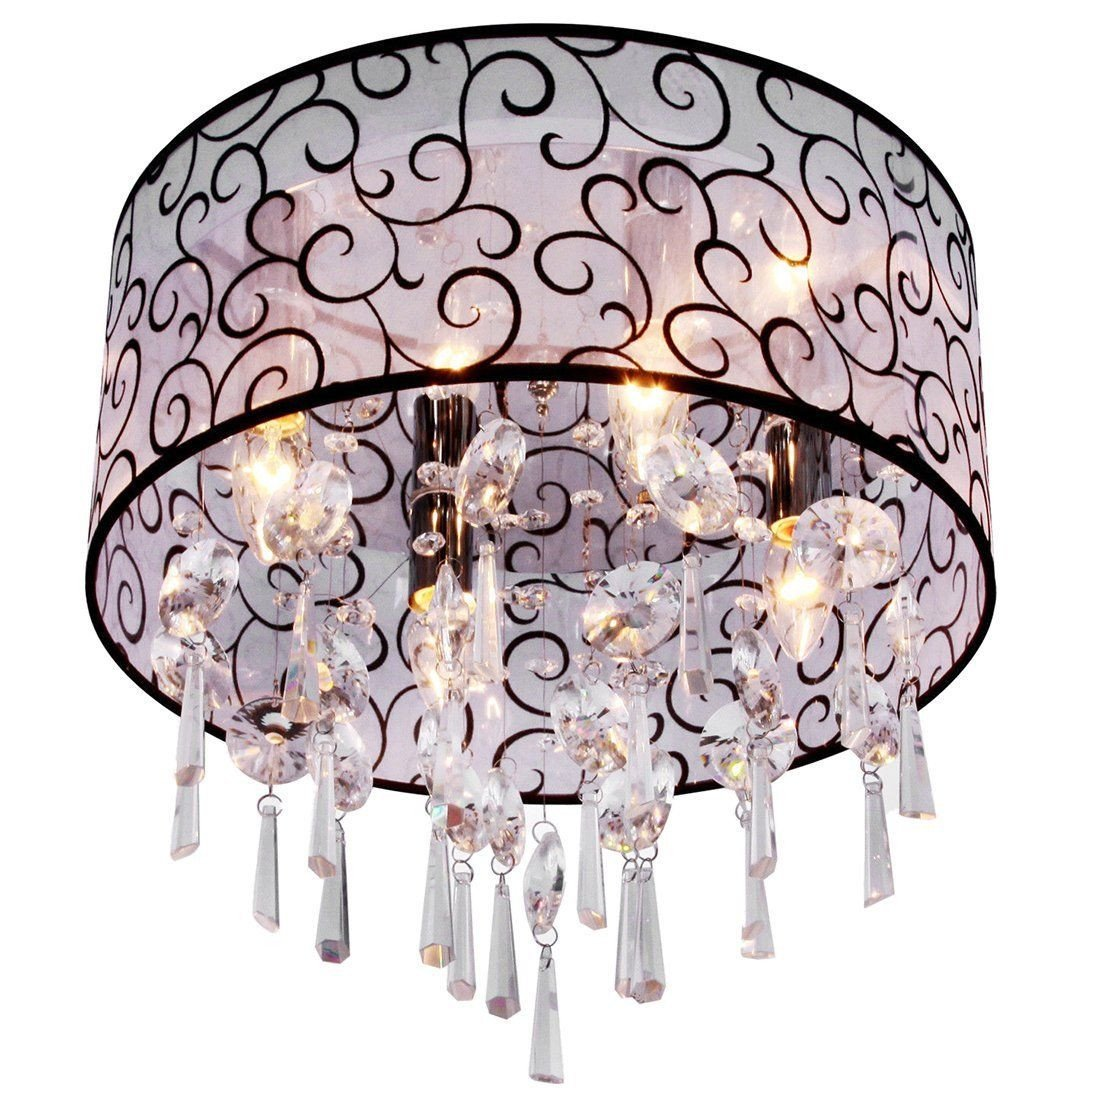 Chandelier Light for Bedroom Best Of Buy Banggood Vintage Crystal Ceiling Light Lamp Chandelier